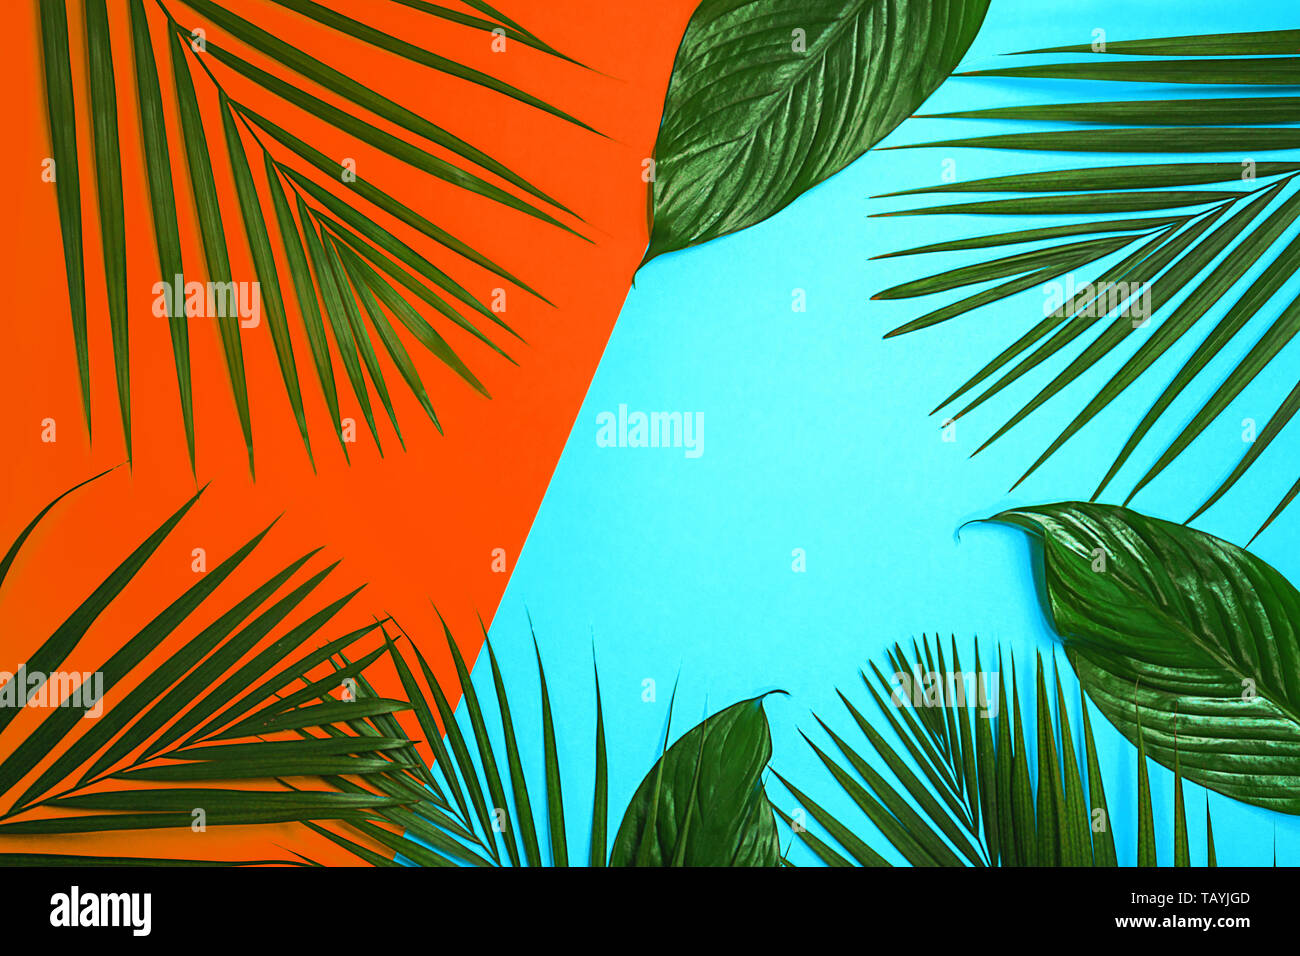 Tropical green palm leaves on colorful background. Bright orange coral and blue colors. - Stock Image